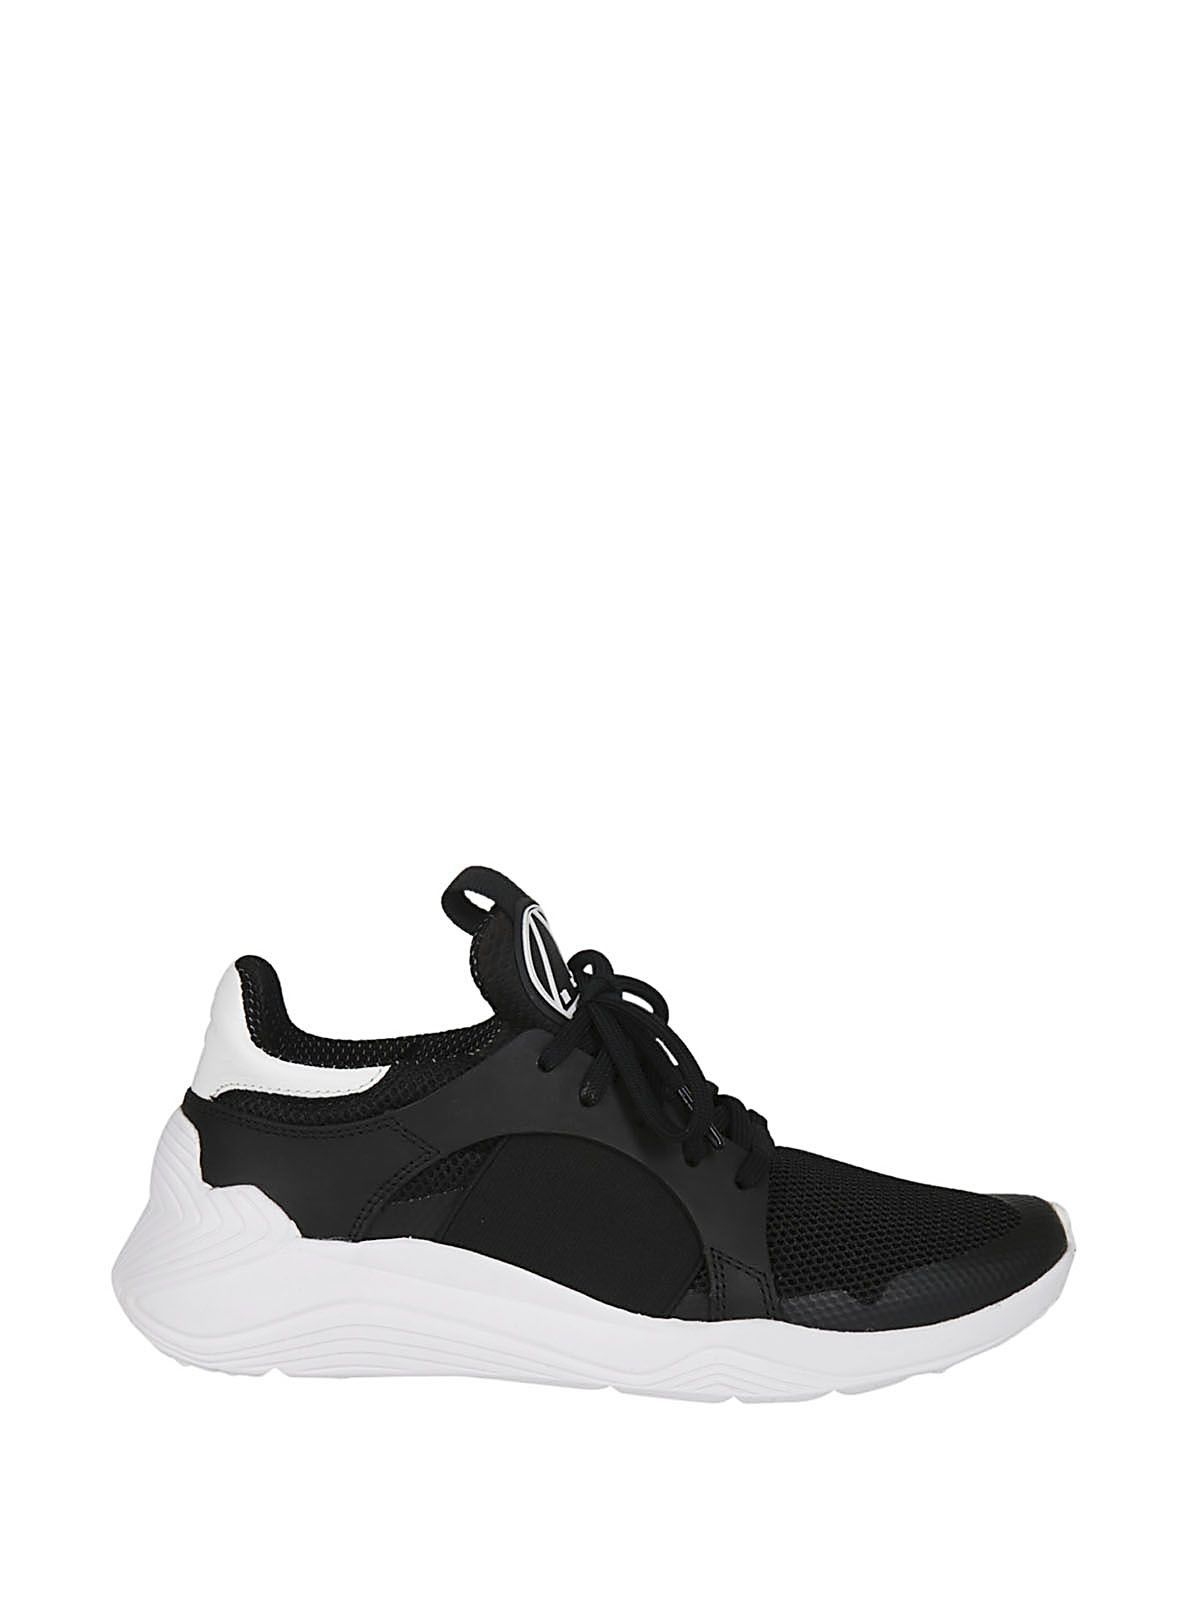 Raf Simons Black Gishiki High-Top Sneakers WrKe3V